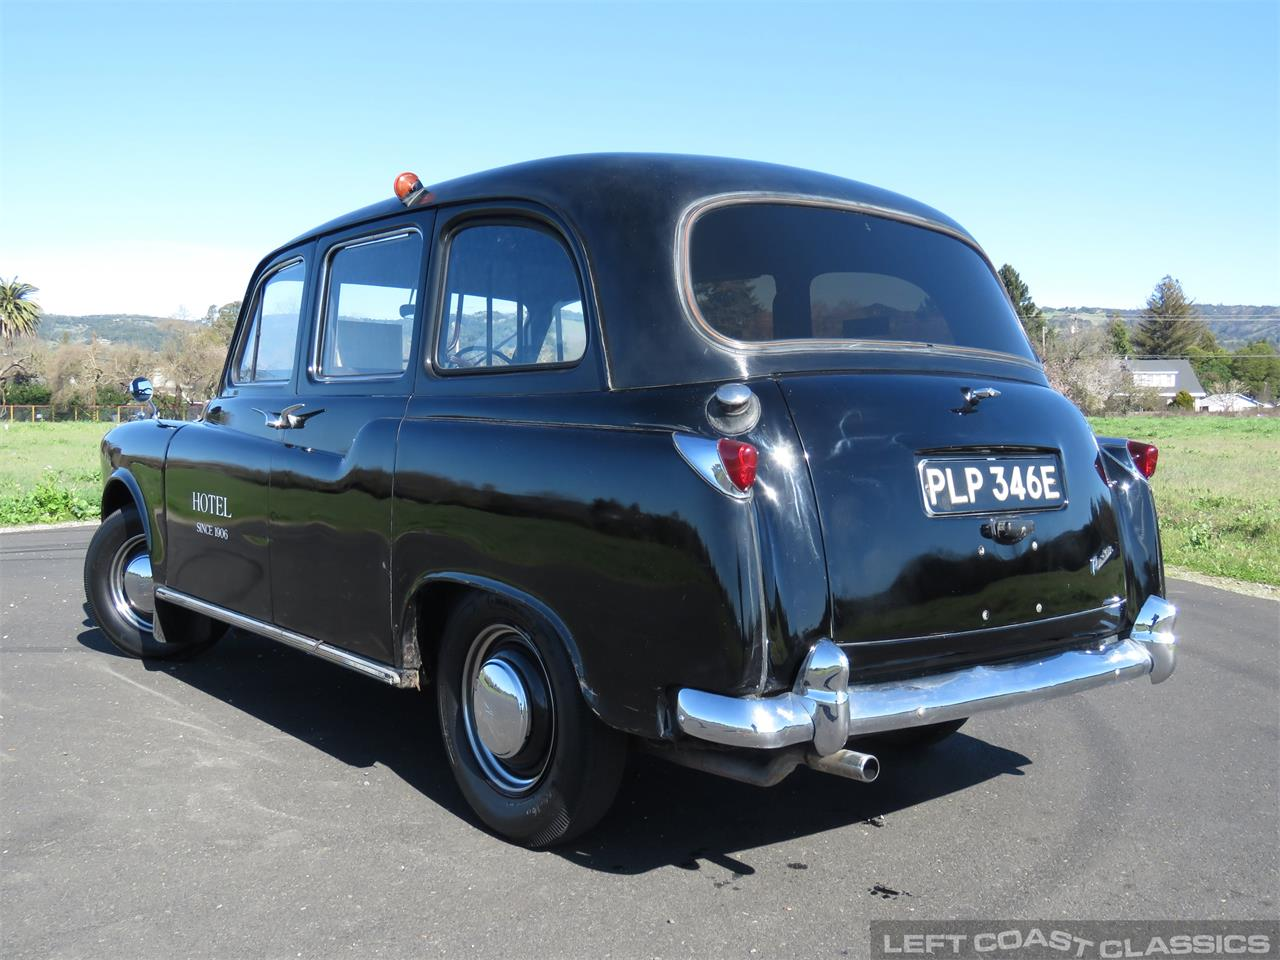 Large Picture of 1967 Austin FX4 Taxi Cab located in California - $12,500.00 - PKBX